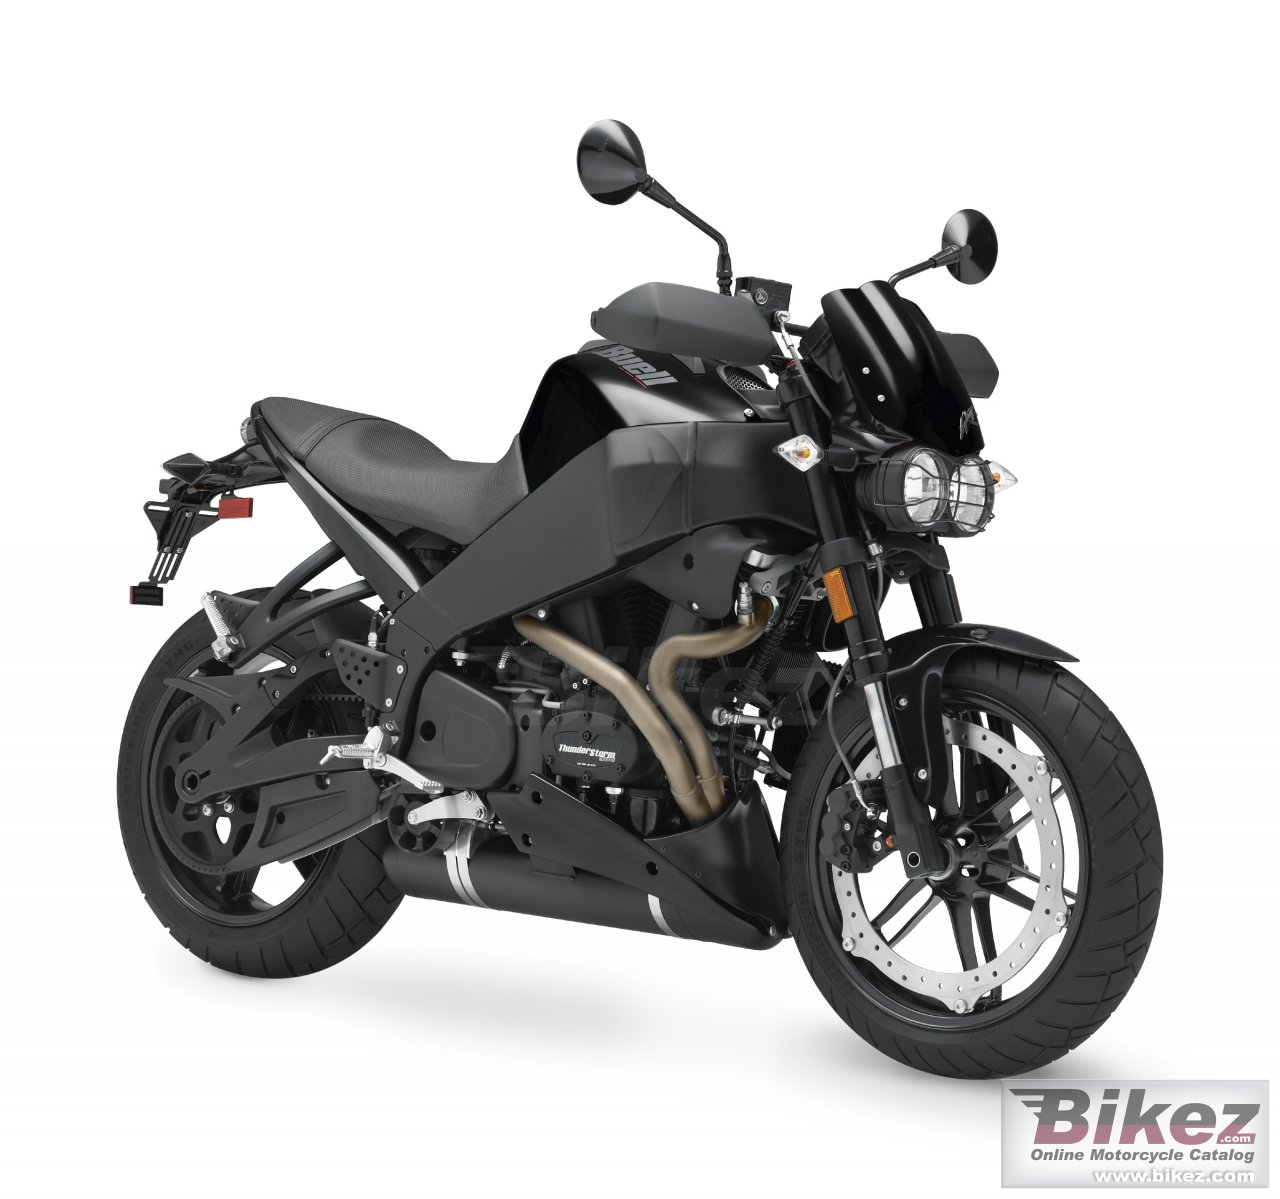 Big Buell xb9sx lightning cityx picture and wallpaper from Bikez.com